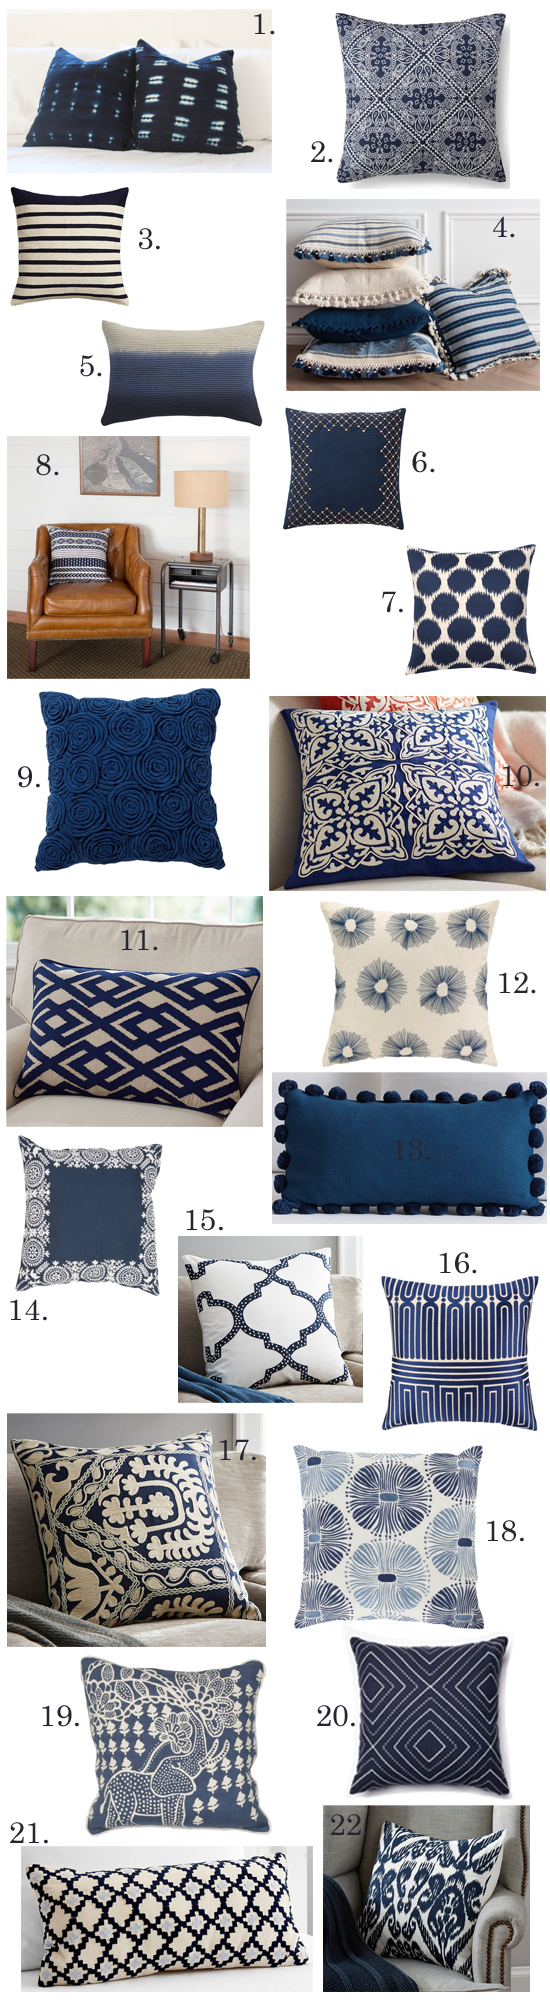 7 Dazzling Colors That Go With Navy Blue Blue Living Room Bedroom Makeover Trendy Living Rooms